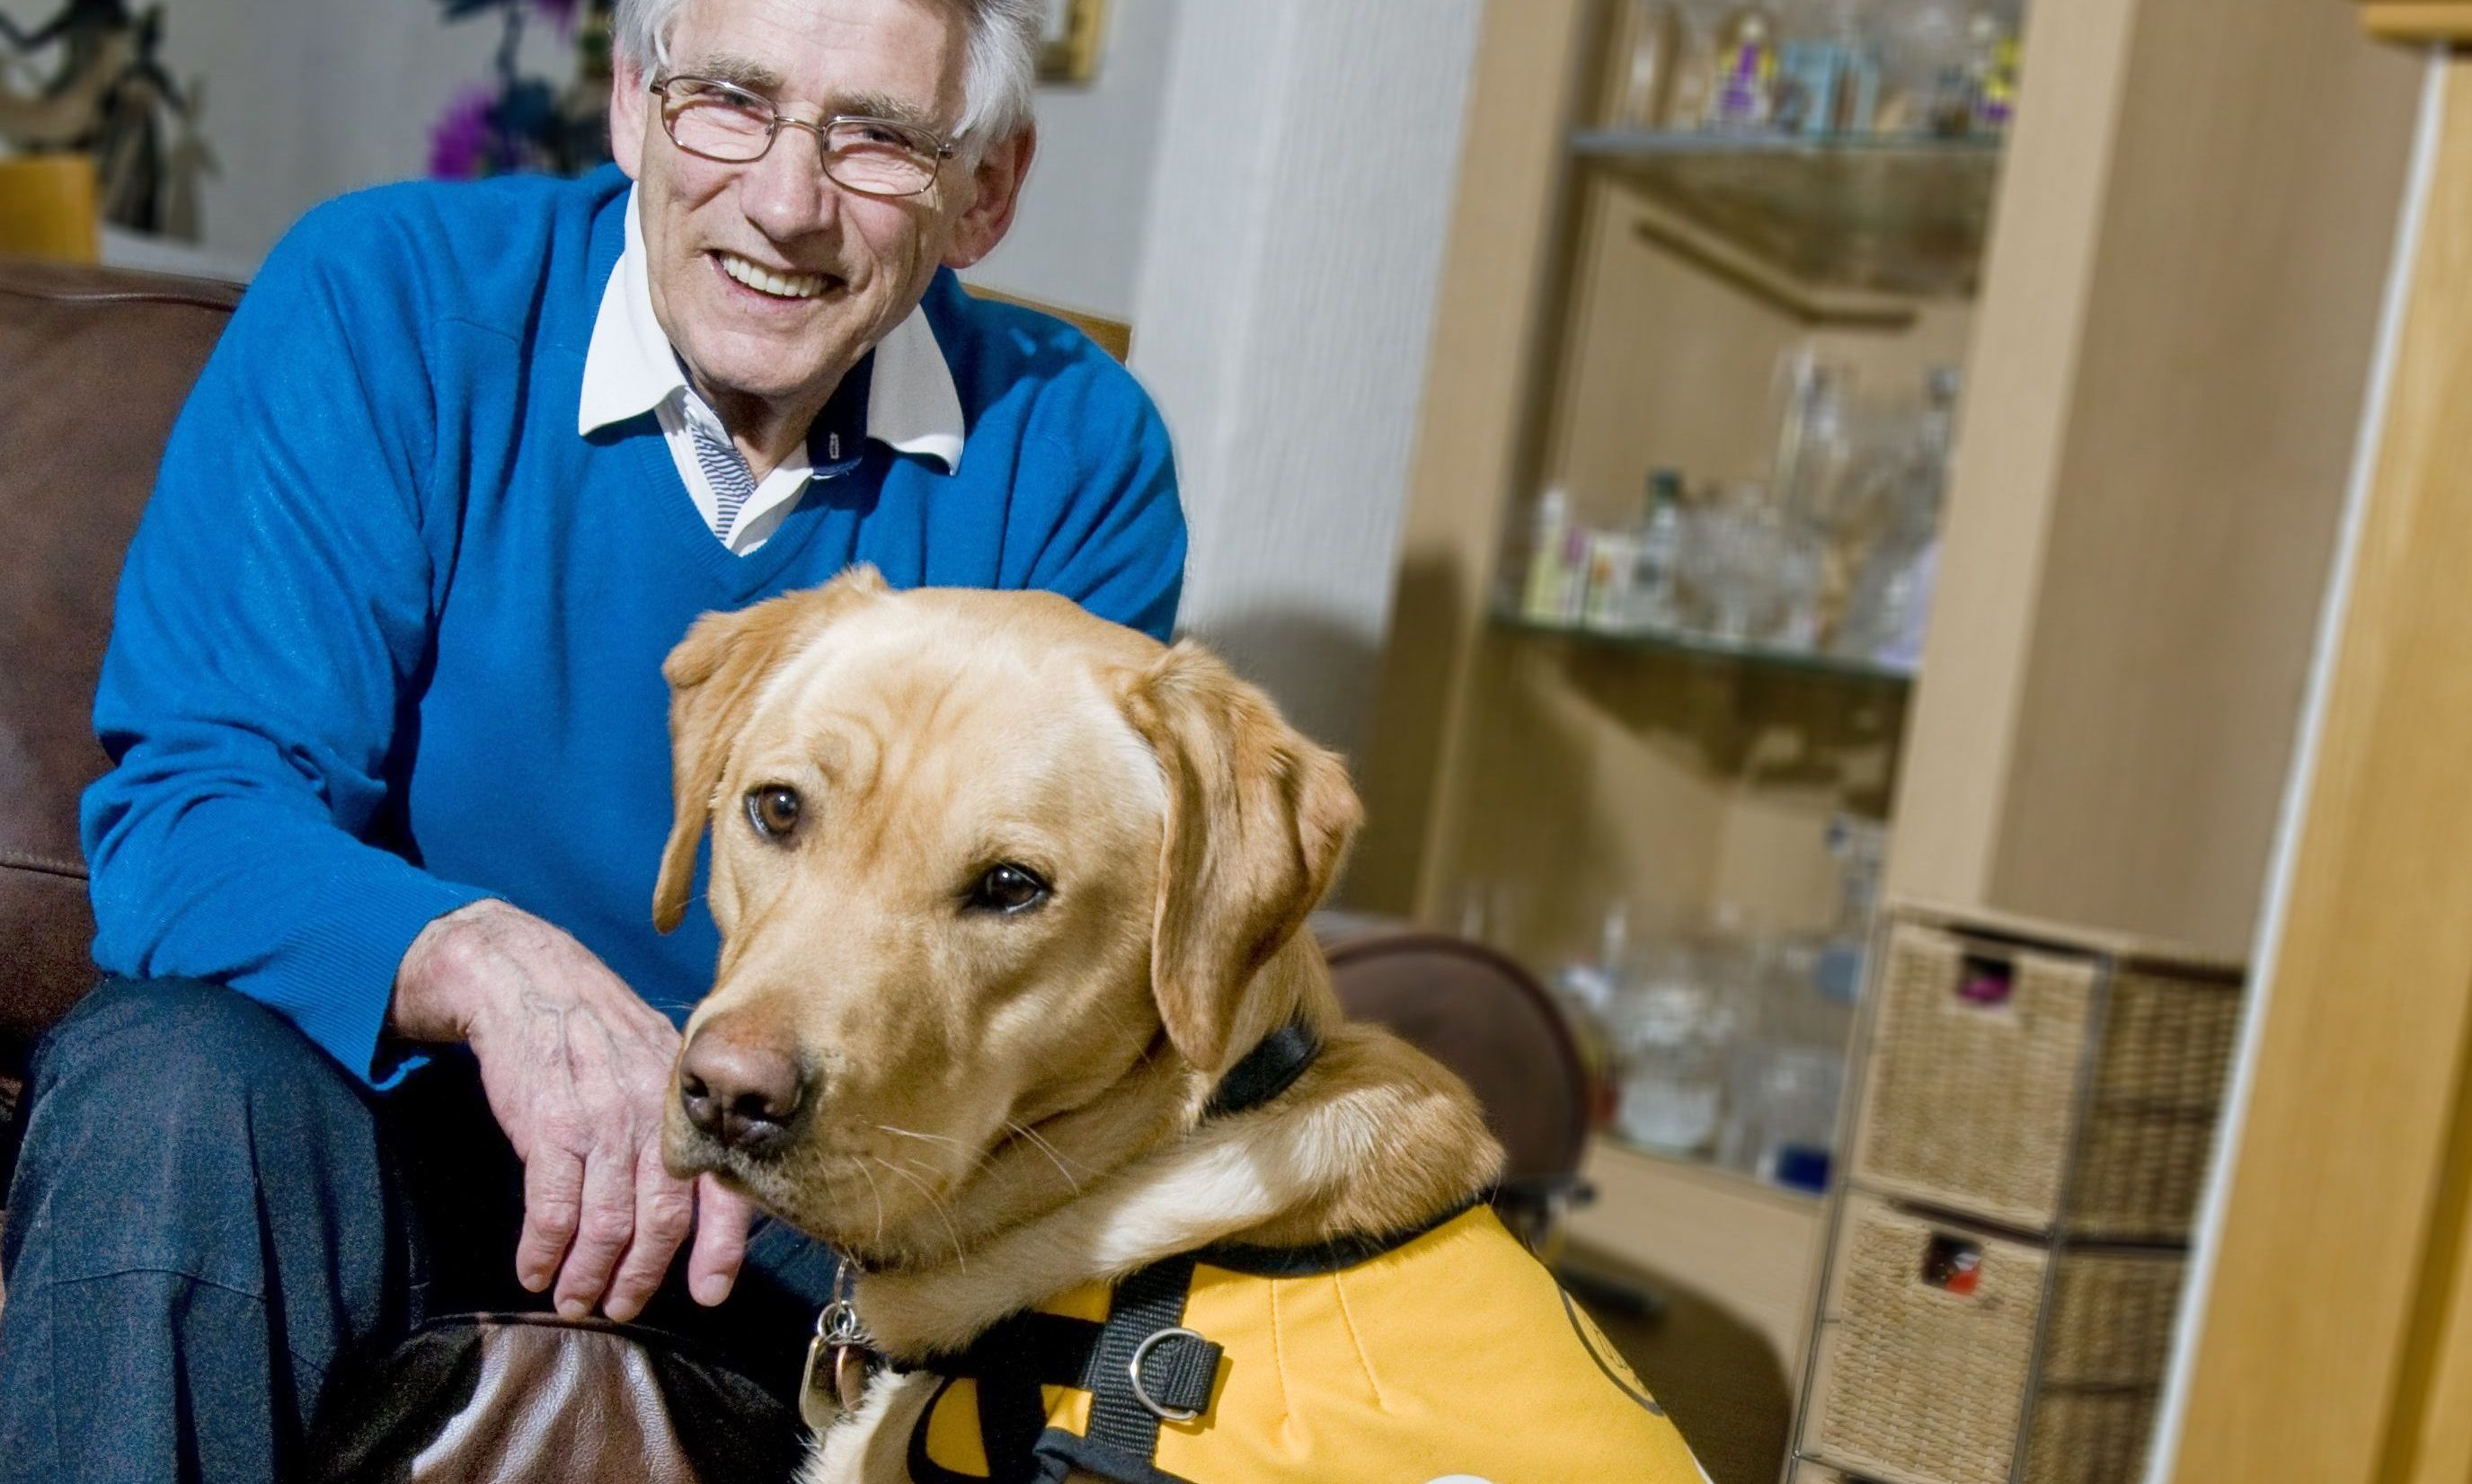 Ken Will with his dementia dog Kaspa.